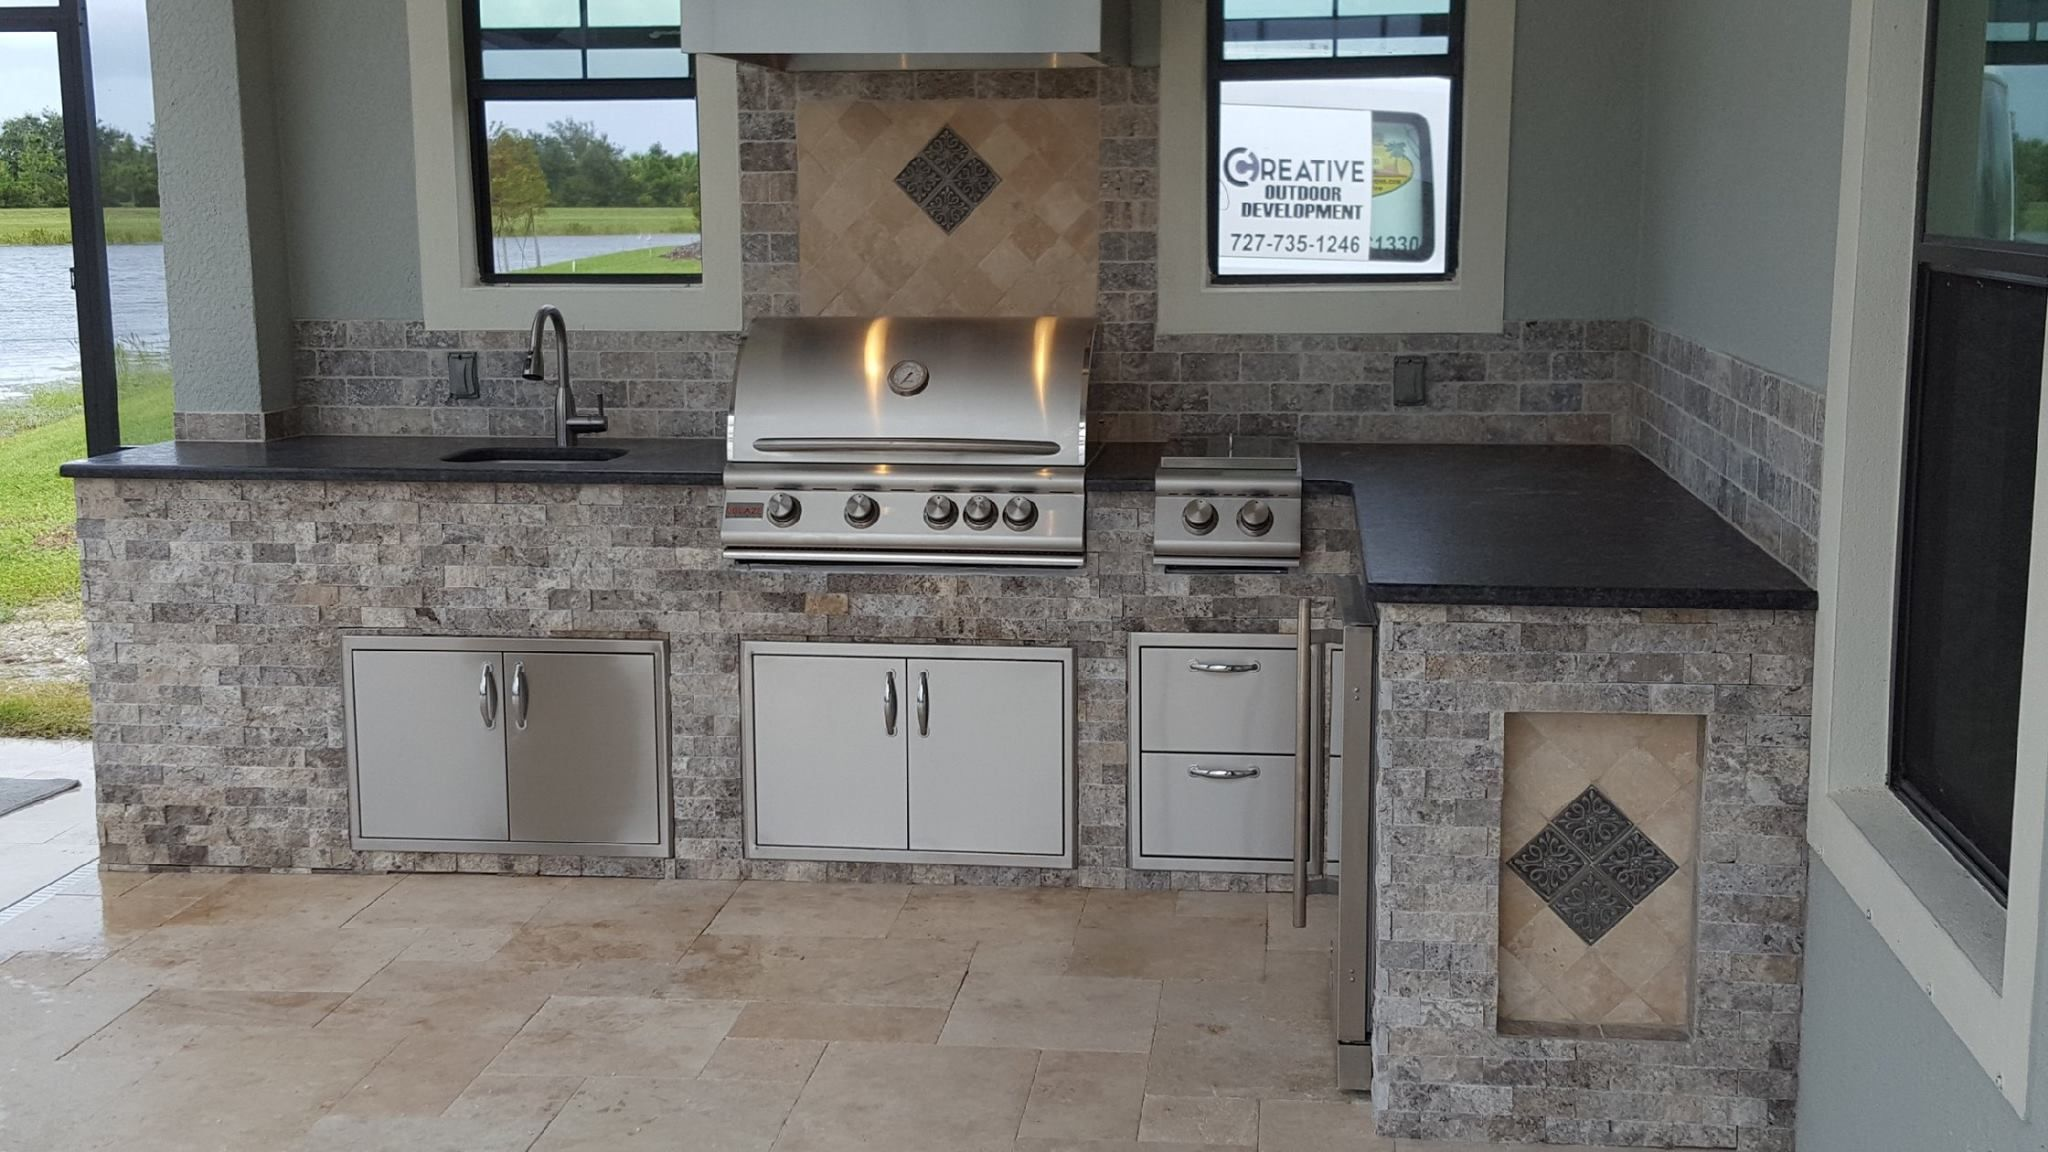 Combining Premium Features With Affordability Blaze Grills And Outdoor Products Are The Perfect Addition To A Concrete Kitchen Kitchen Builder Outdoor Kitchen